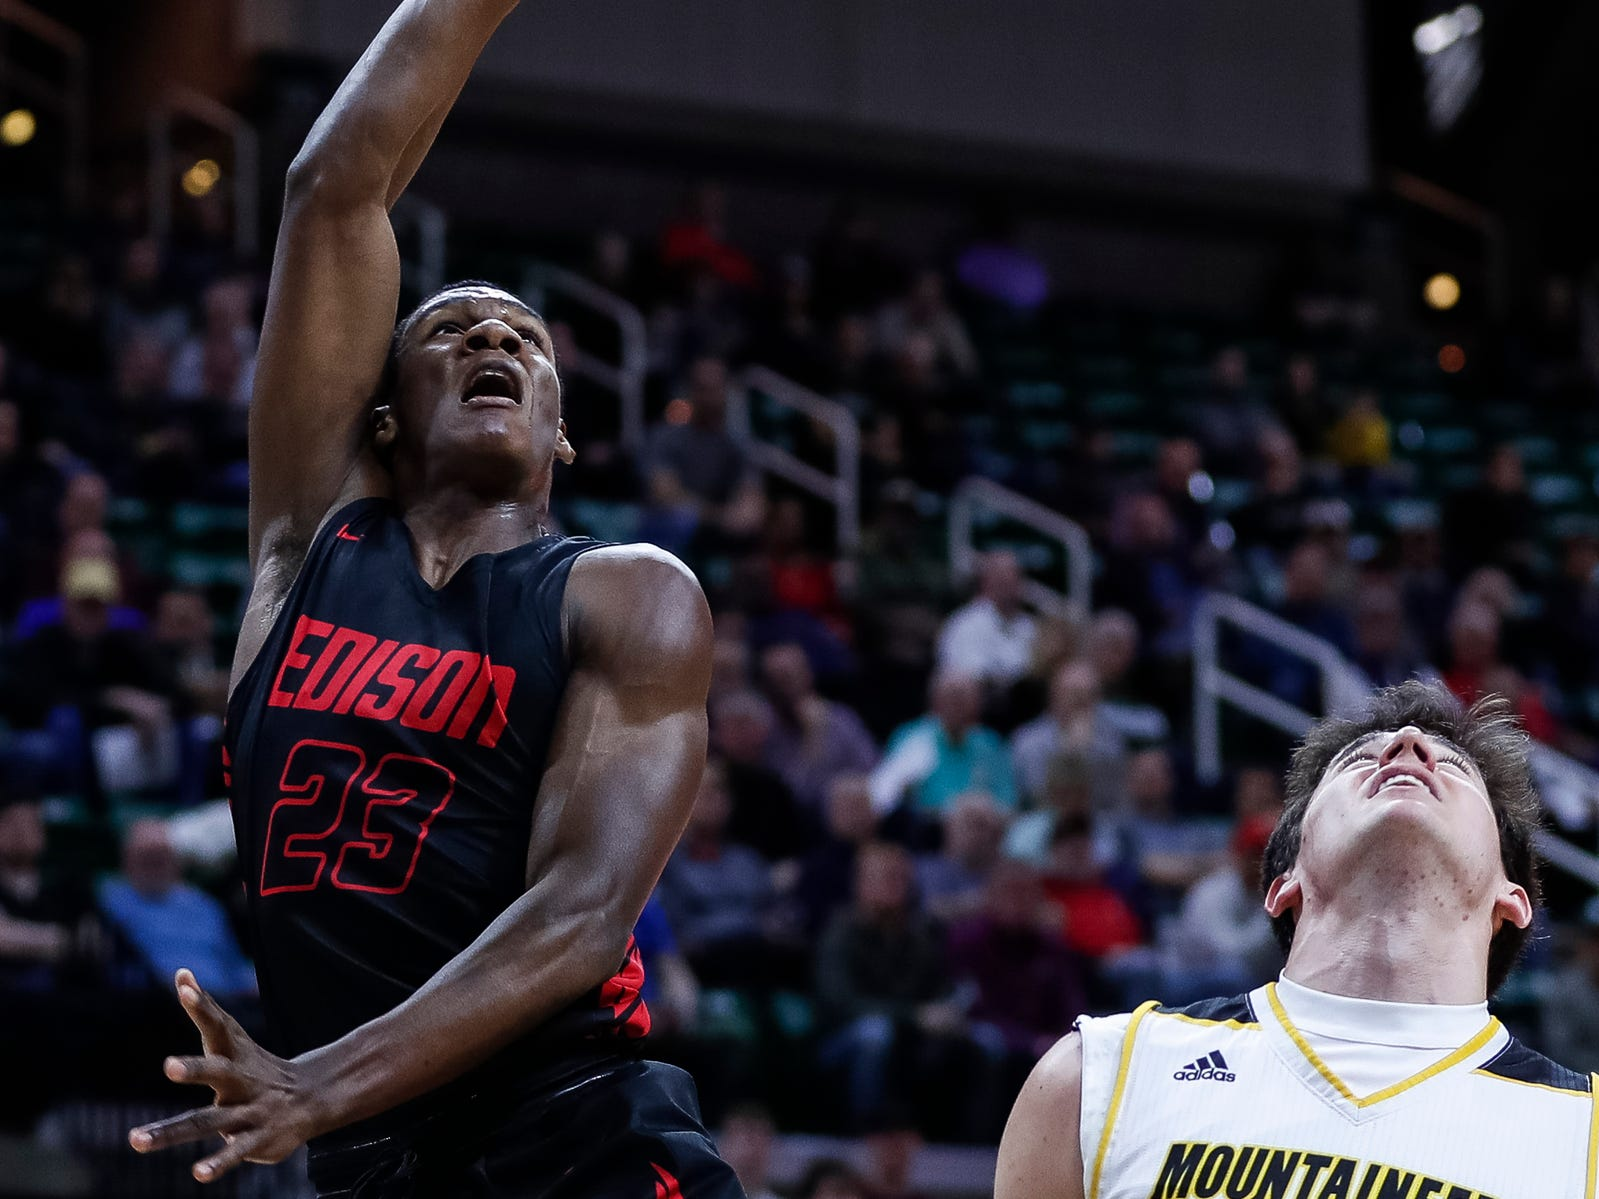 Detroit Edison's Raynard Williams makes a layup against Iron Mountain's Jaden Vicenzi during the first half of MHSAA Division 3 semifinal at the Breslin Center in East Lansing, Thursday, March 14, 2019.